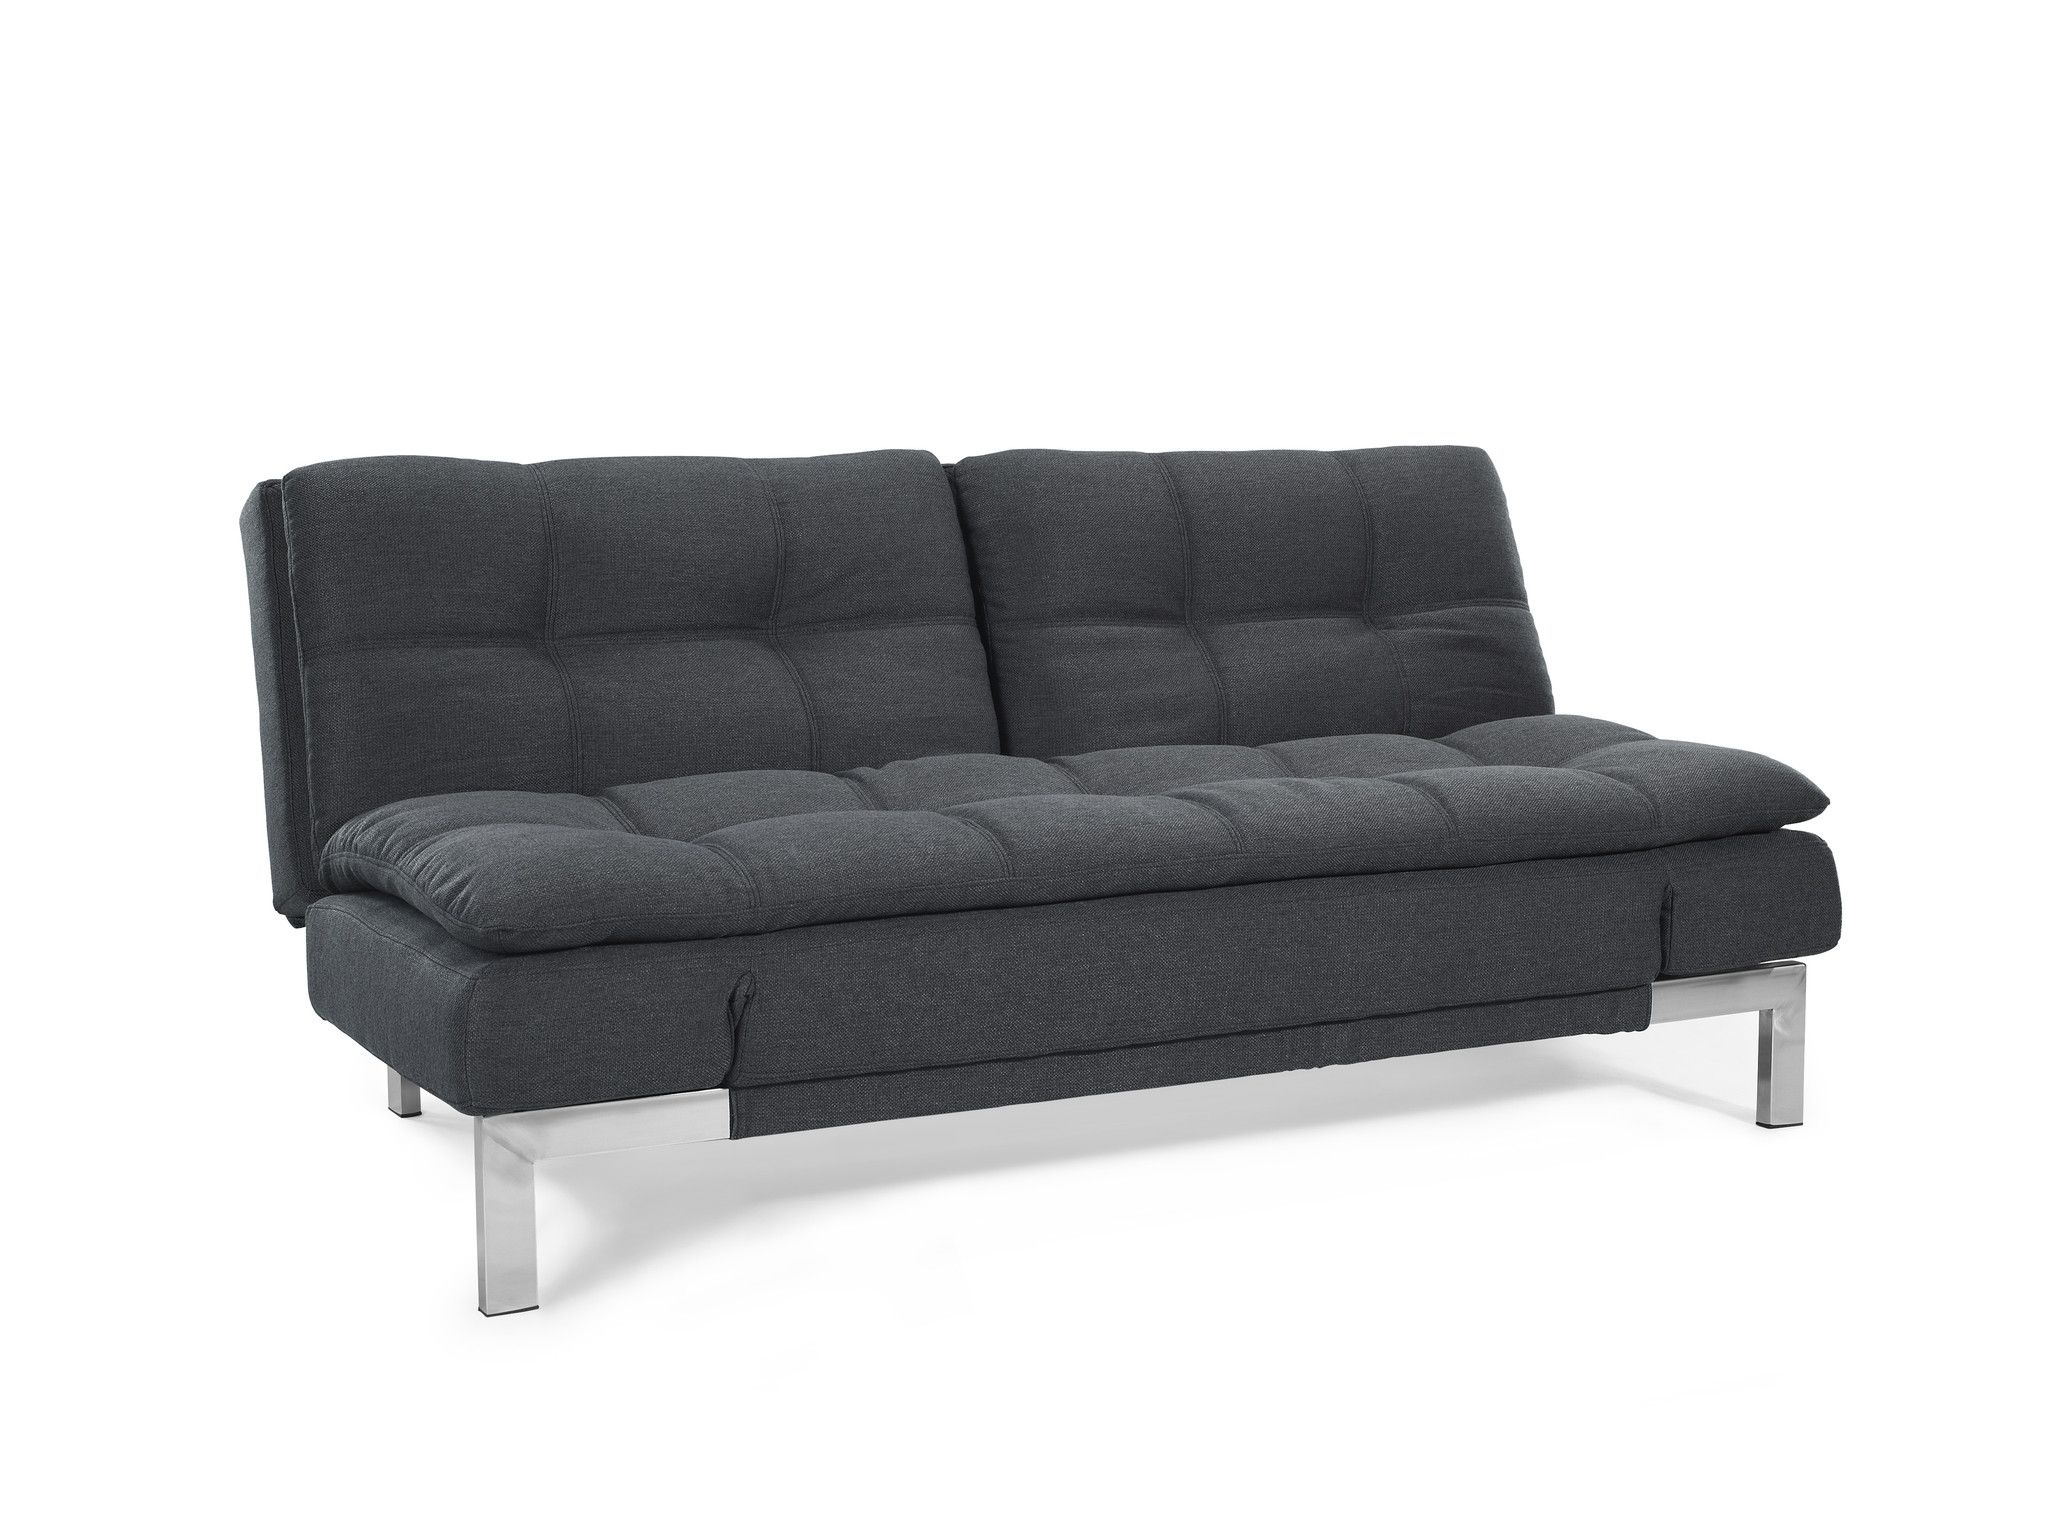 496 Lifestyle Solutions Serta Dream Convertible Boca Sofa Charcoal SABOCS3U4CC